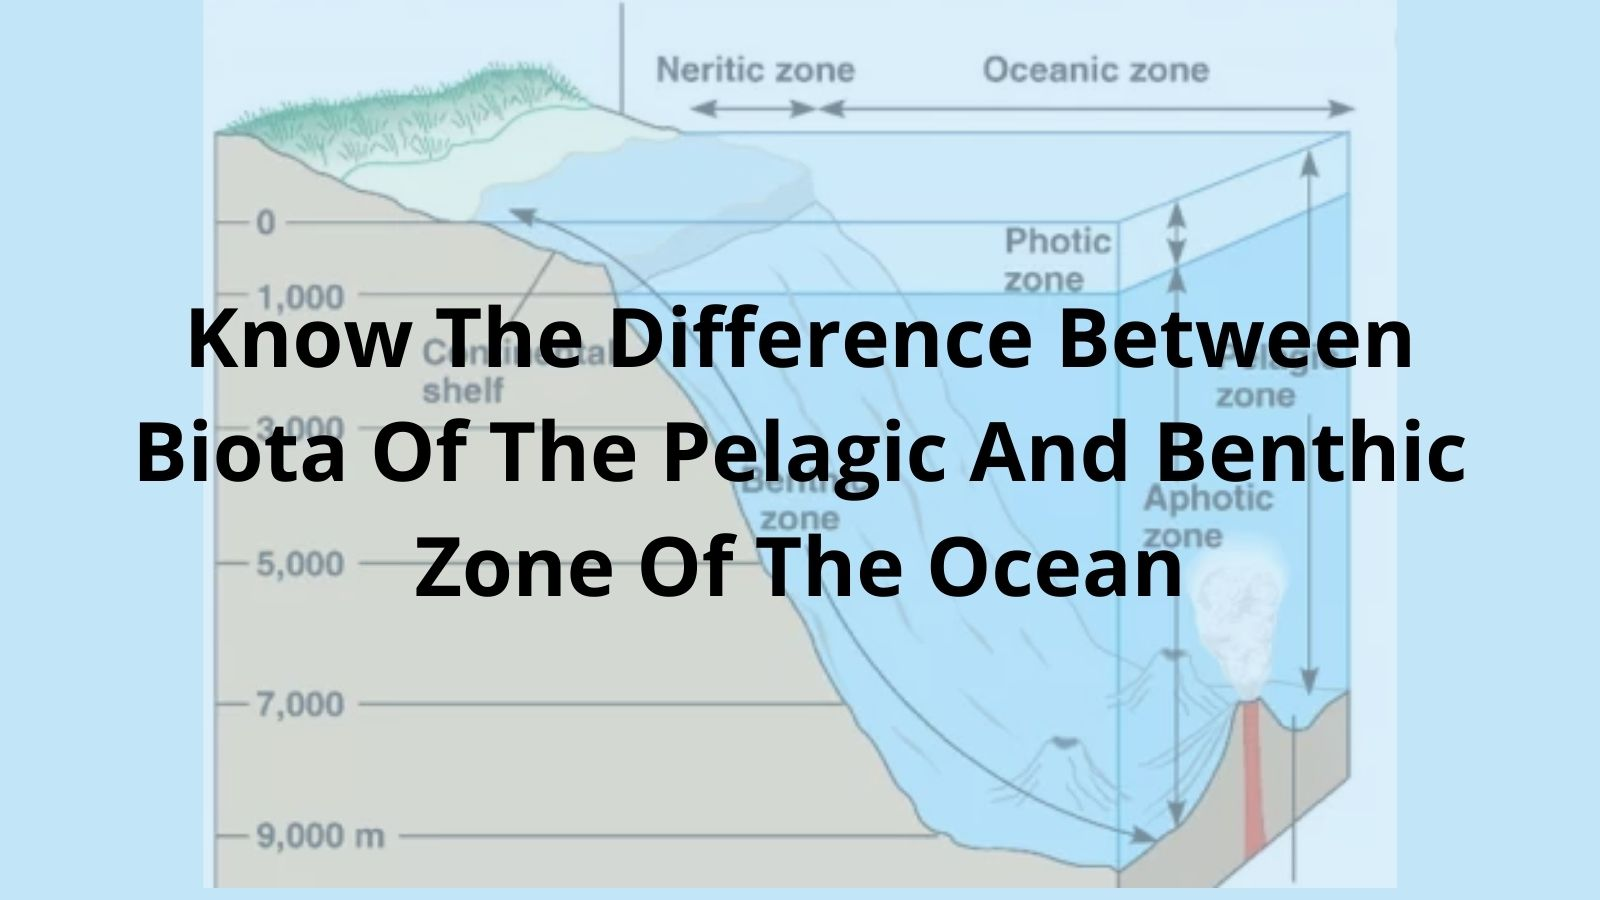 Understand The Difference Between Biota Of The Pelagic And Benthic Zone Of The Ocean